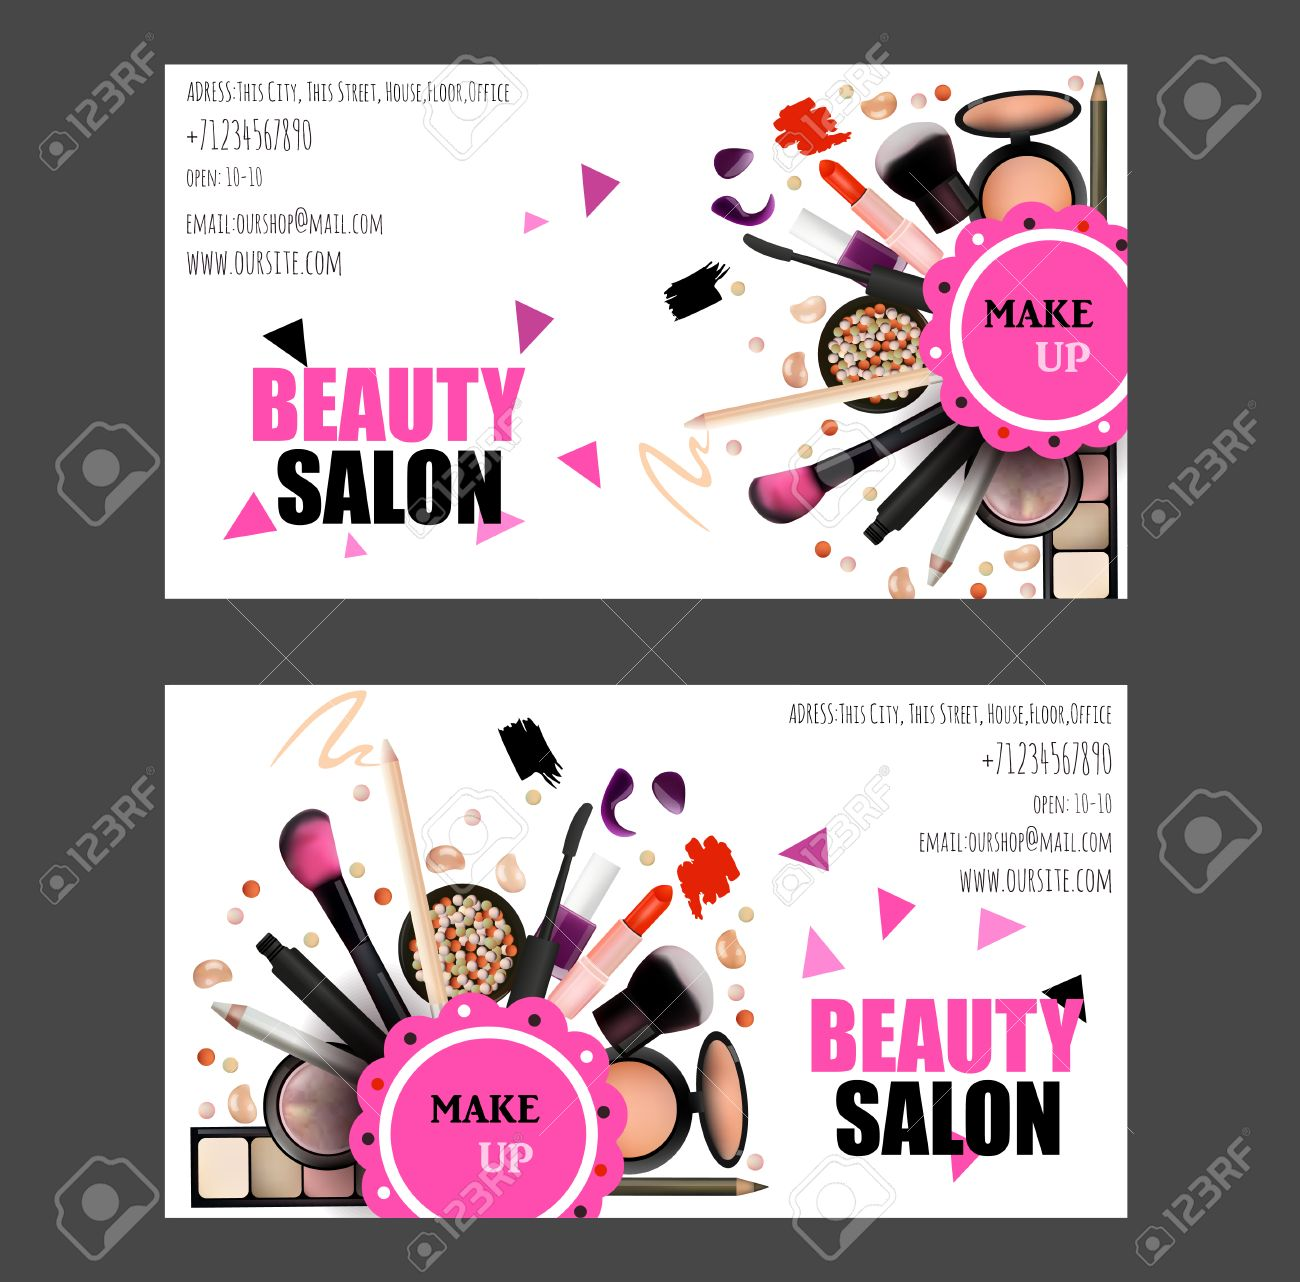 Beauty Salon Business Card Design Set. Cosmetic Products, Professional Make  Up, Care.  Make Voucher